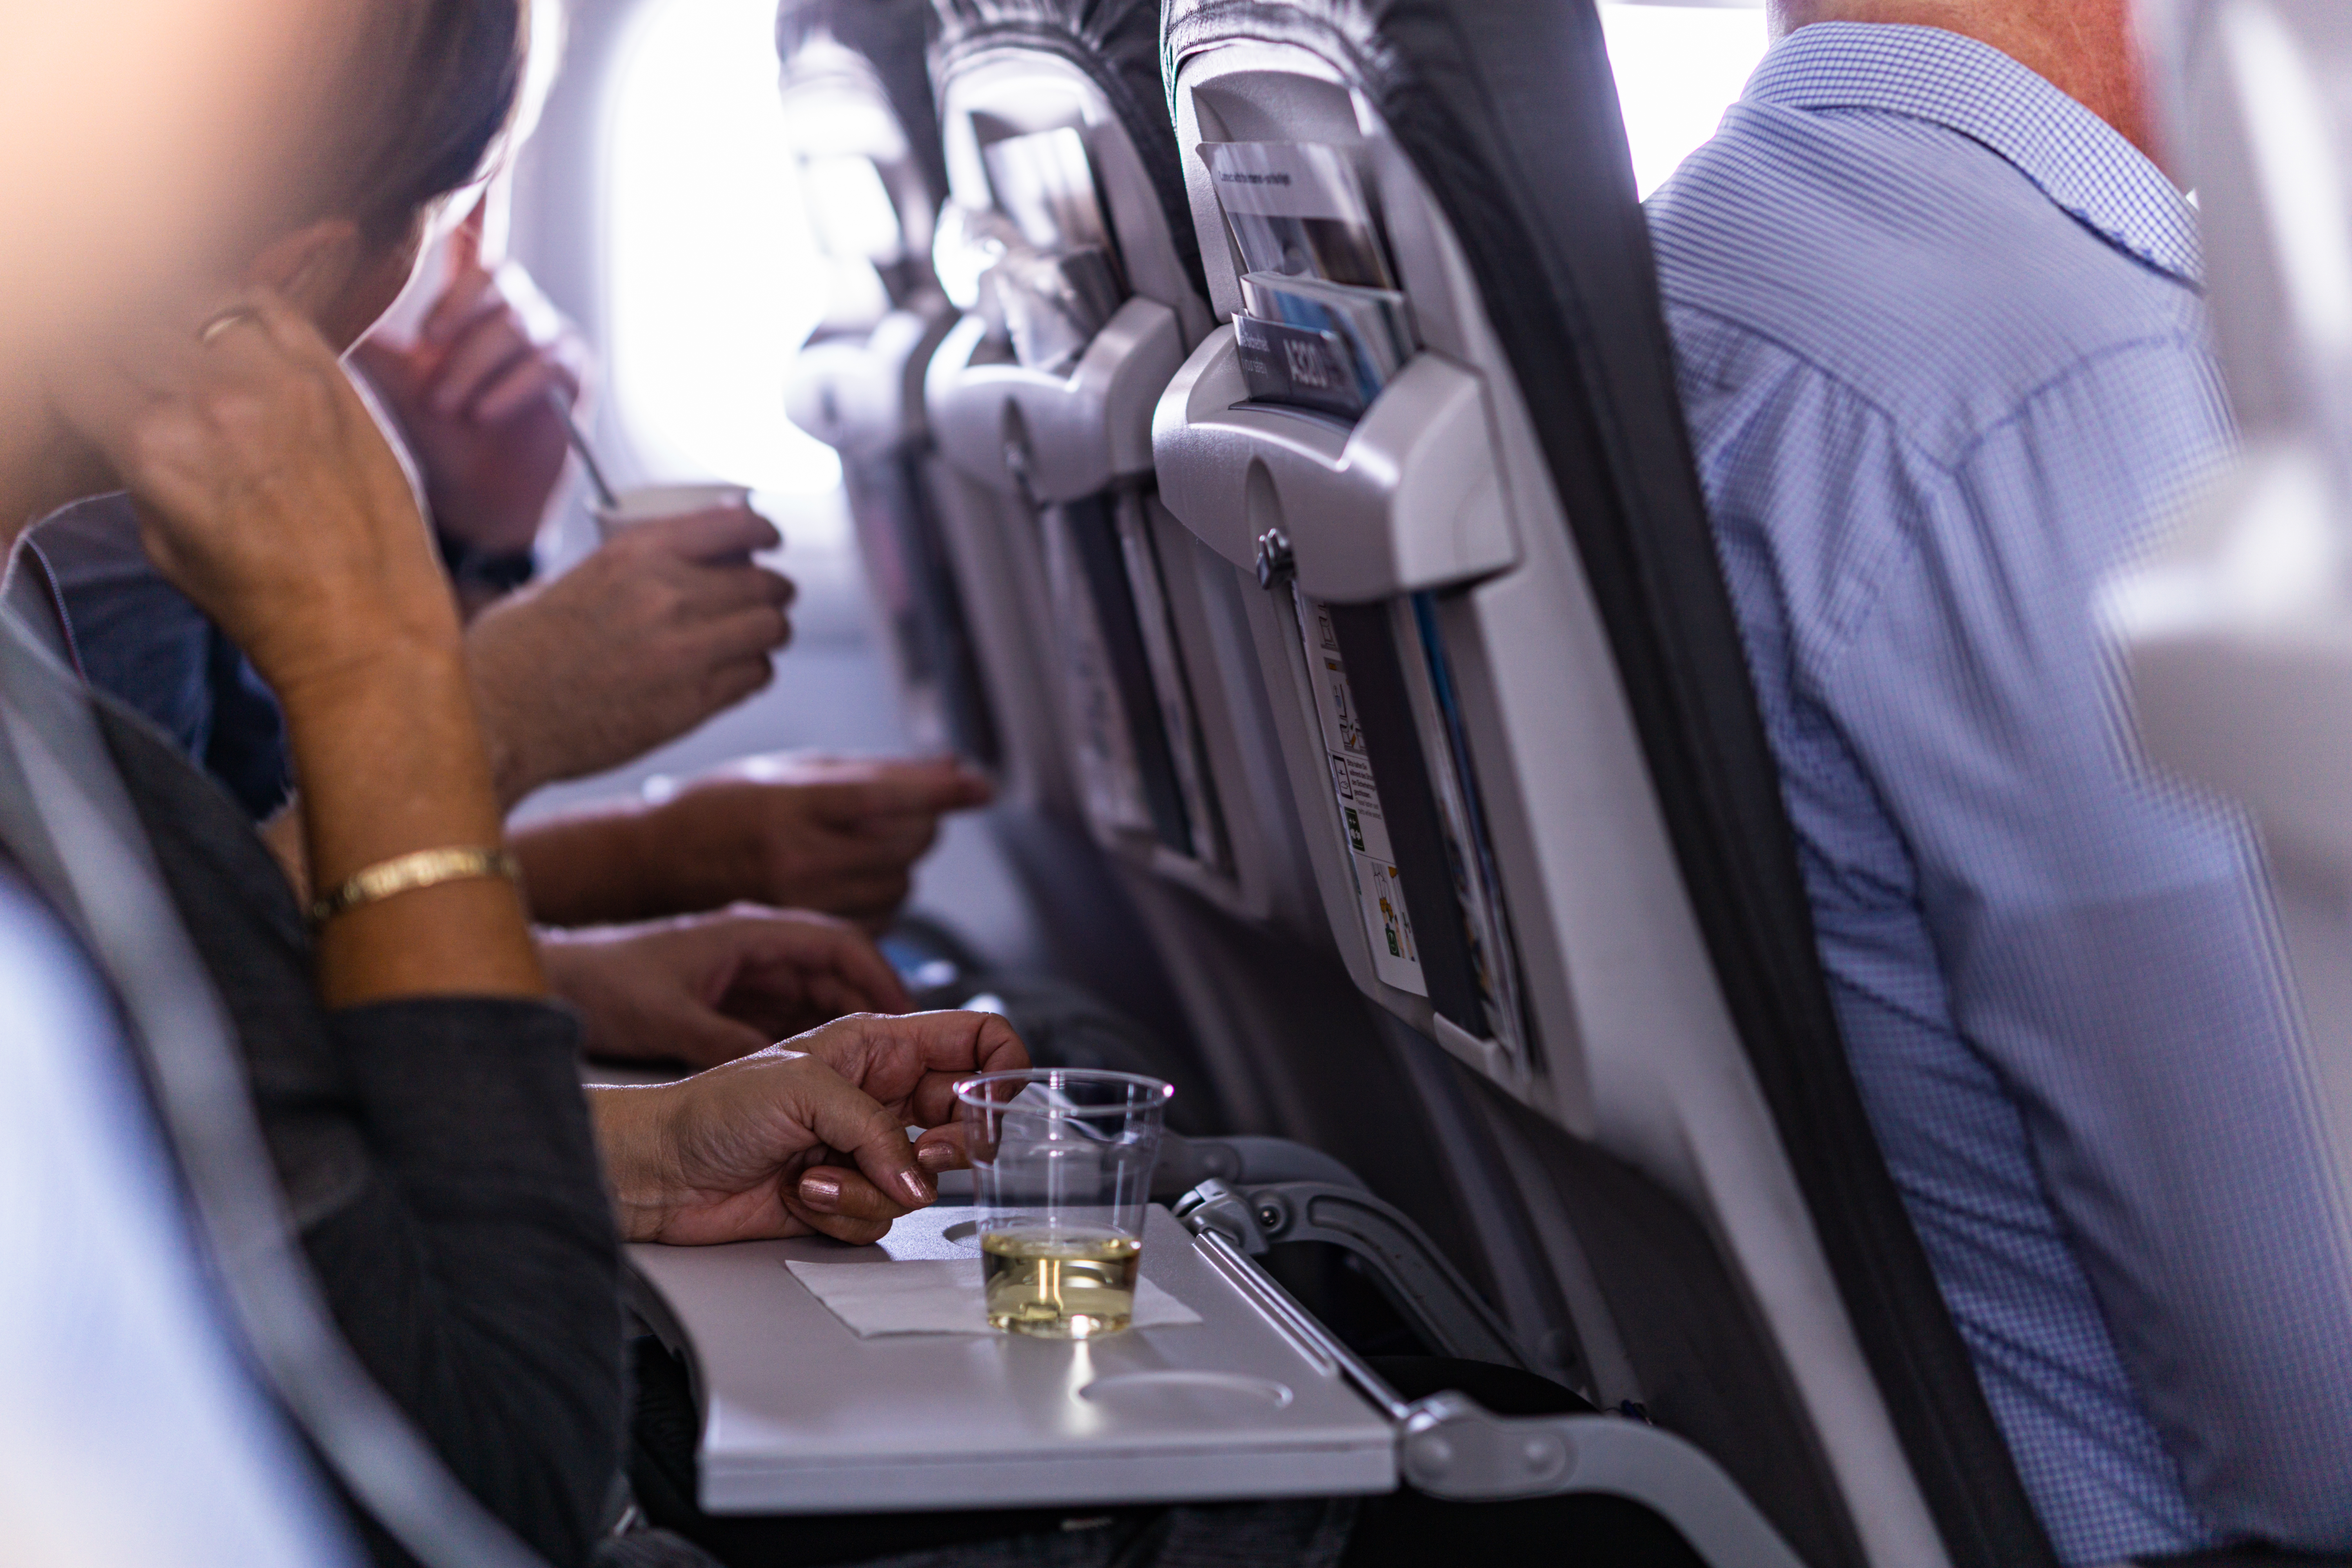 People sit in a cramped row of an airplane with the seat-back tables down and a plastic cup of white wine in the foreground.